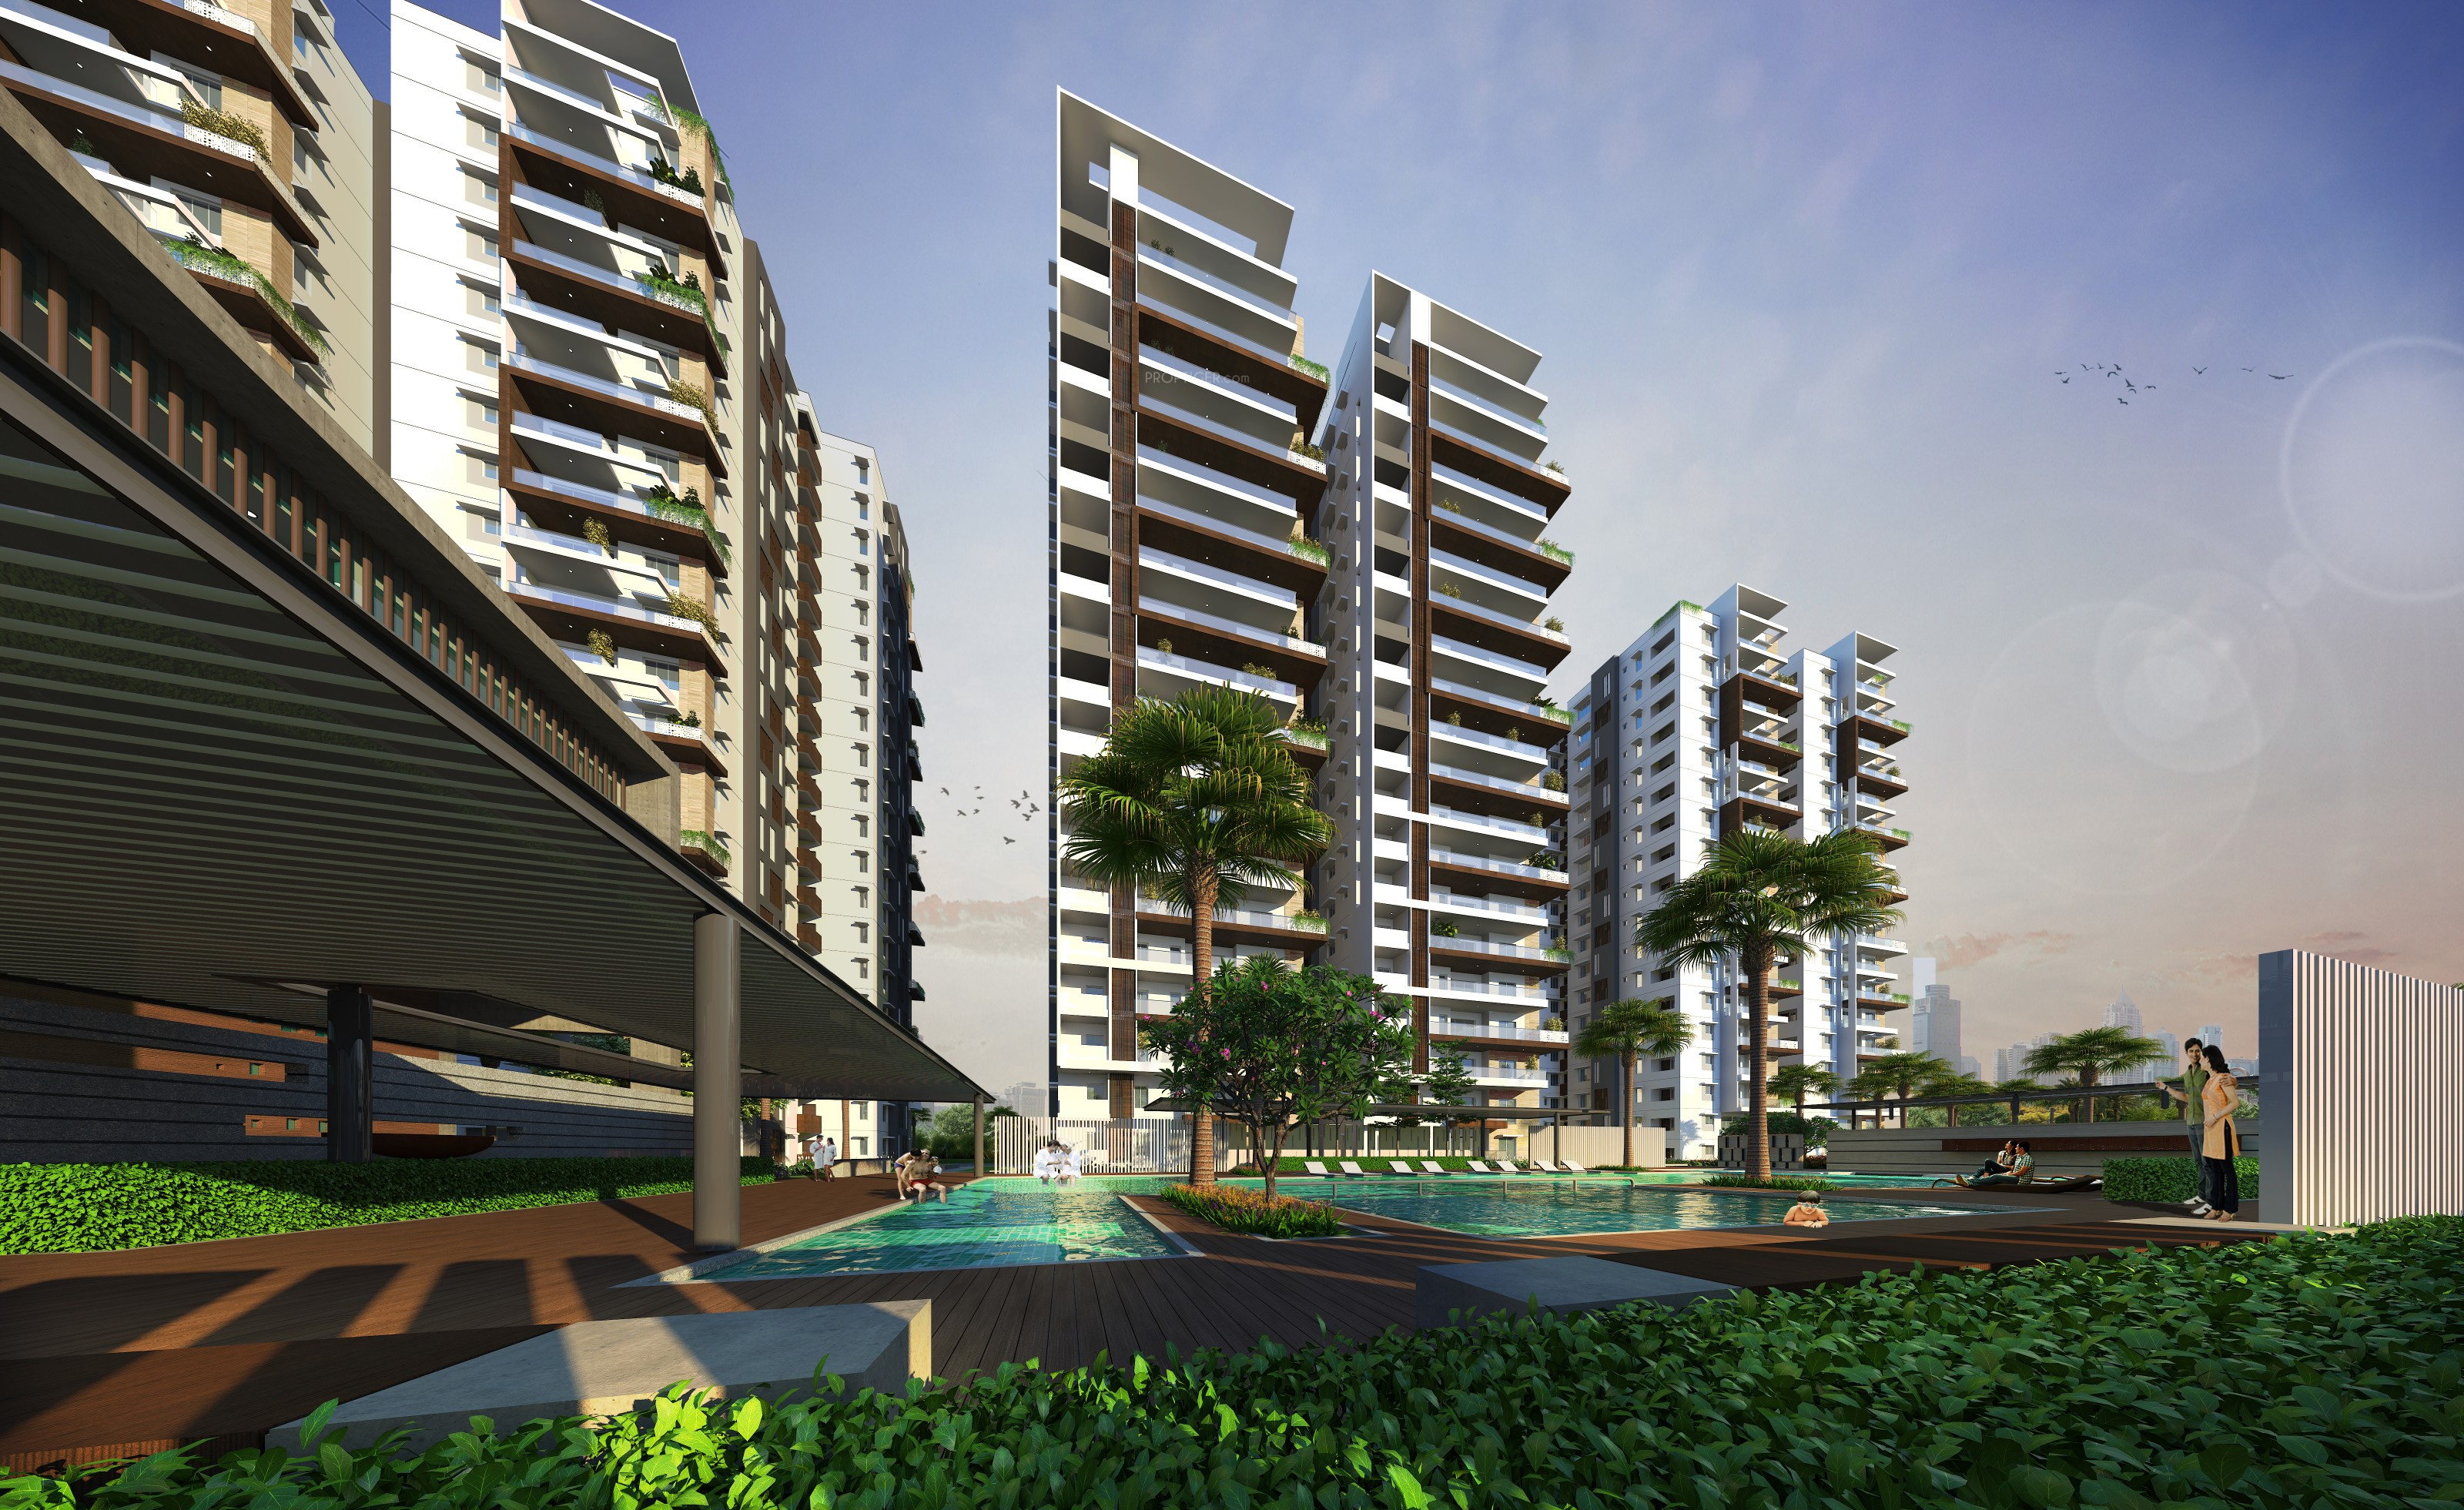 2476 Sq Ft 3 Bhk 3t Apartment For Sale In Jayabheri Group